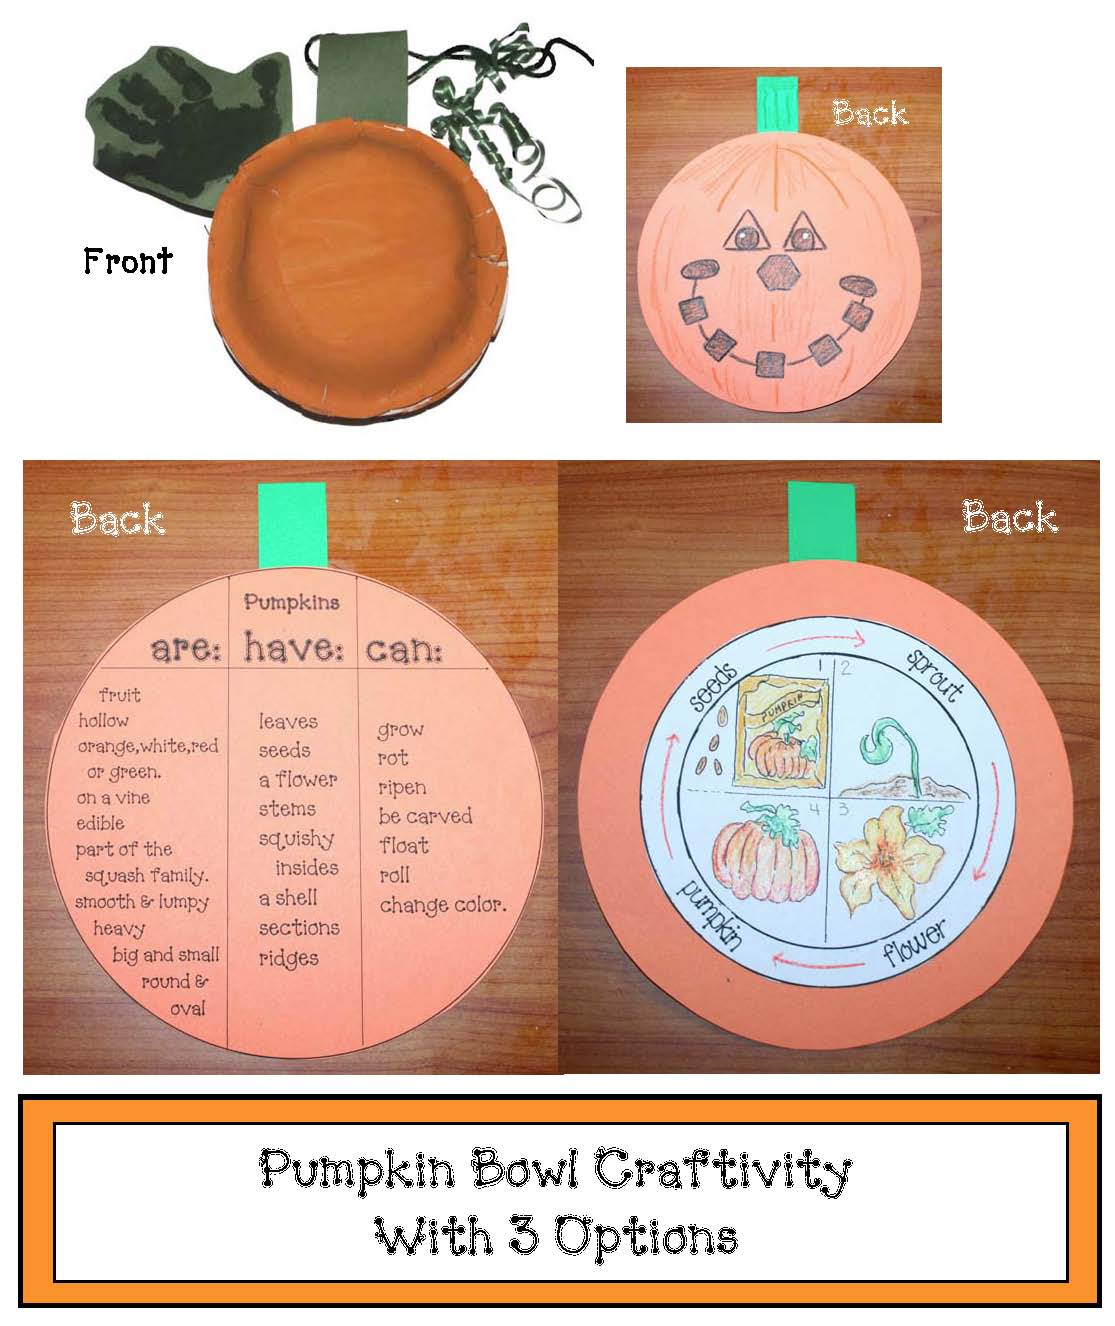 pumpkin crafts, pumpkin activities, pumpkin writing prompts, common core pumpkins, life cycle of a pumpkin, pumpkin facts, pumpkin masks, pumpkin puppets, peekin in a pumpkin, kool aid pumpkins